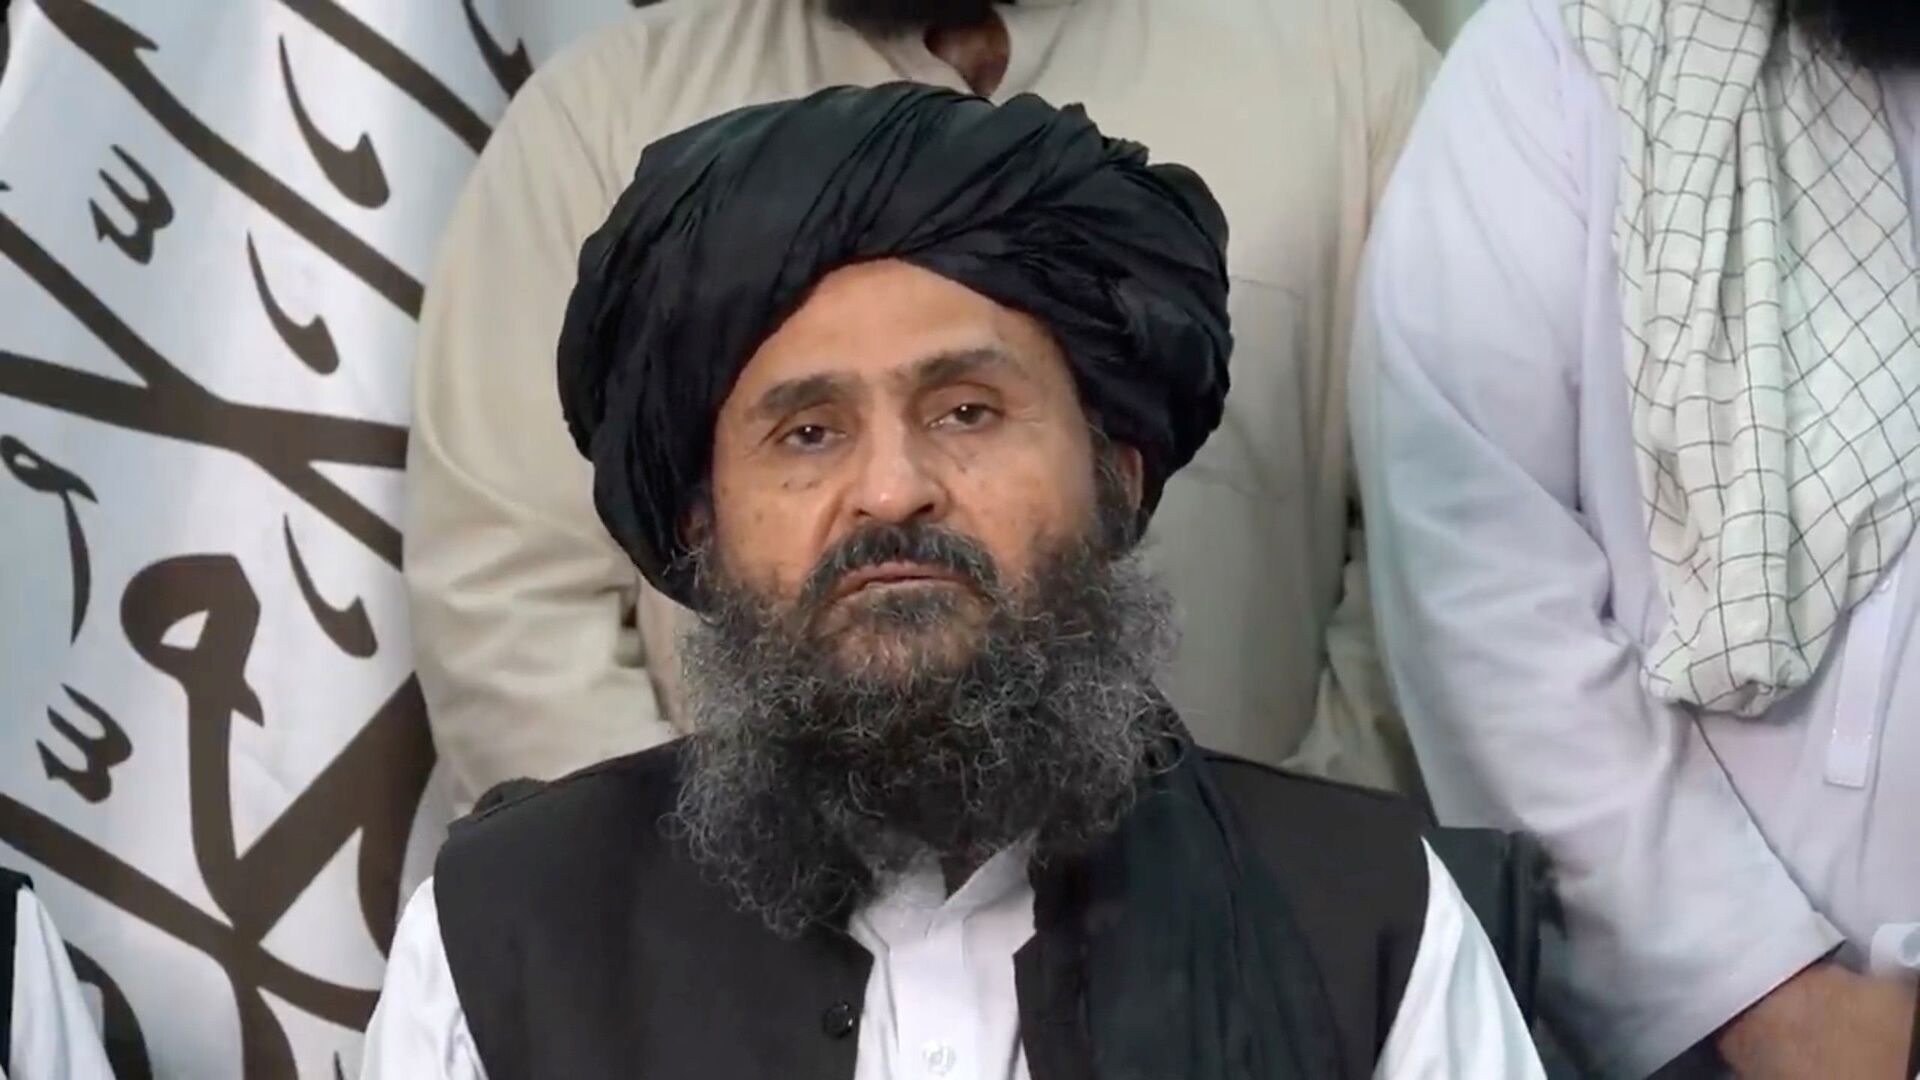 Mullah Baradar Akhund, a senior official of the Taliban, makes a video statement, in a still image taken from a video recorded in an unidentified location and released on August 16, 2021 - Sputnik International, 1920, 07.09.2021